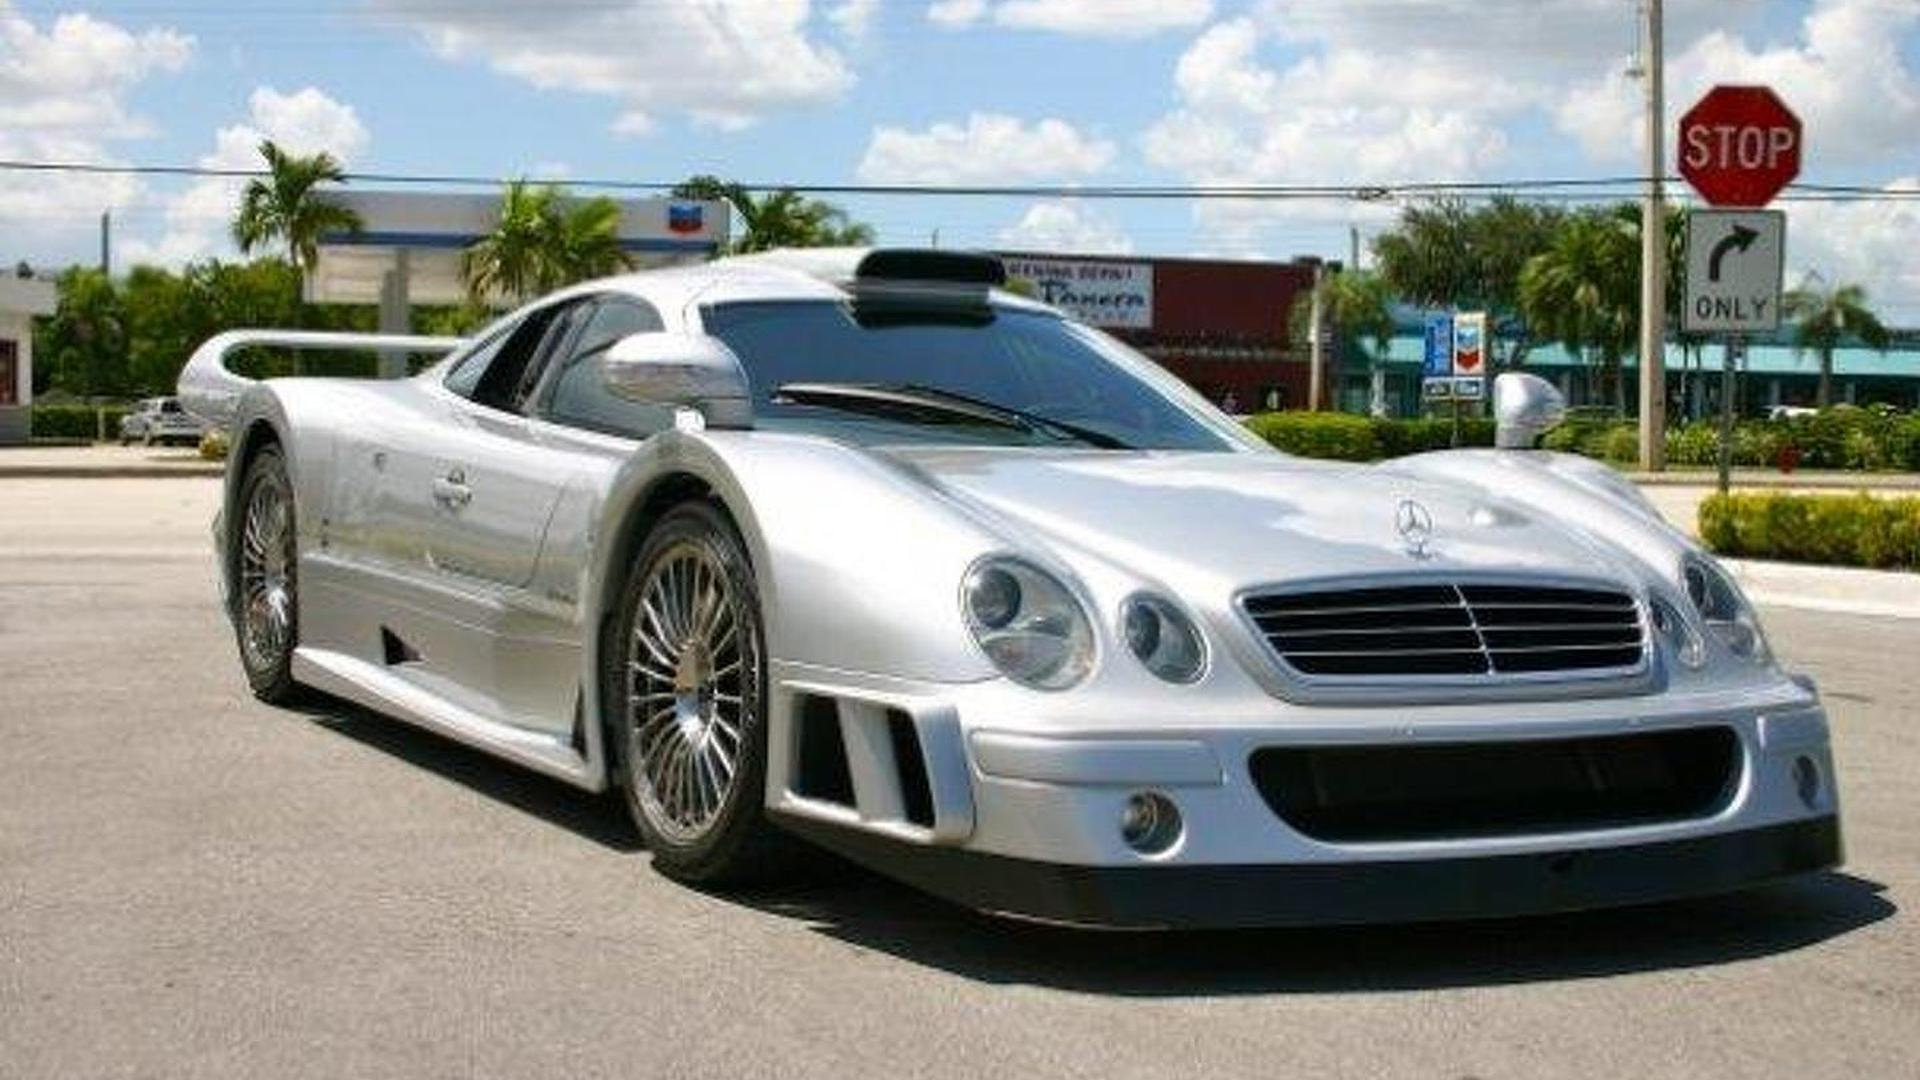 2000 mercedes benz clk gtr amg for sale. Black Bedroom Furniture Sets. Home Design Ideas